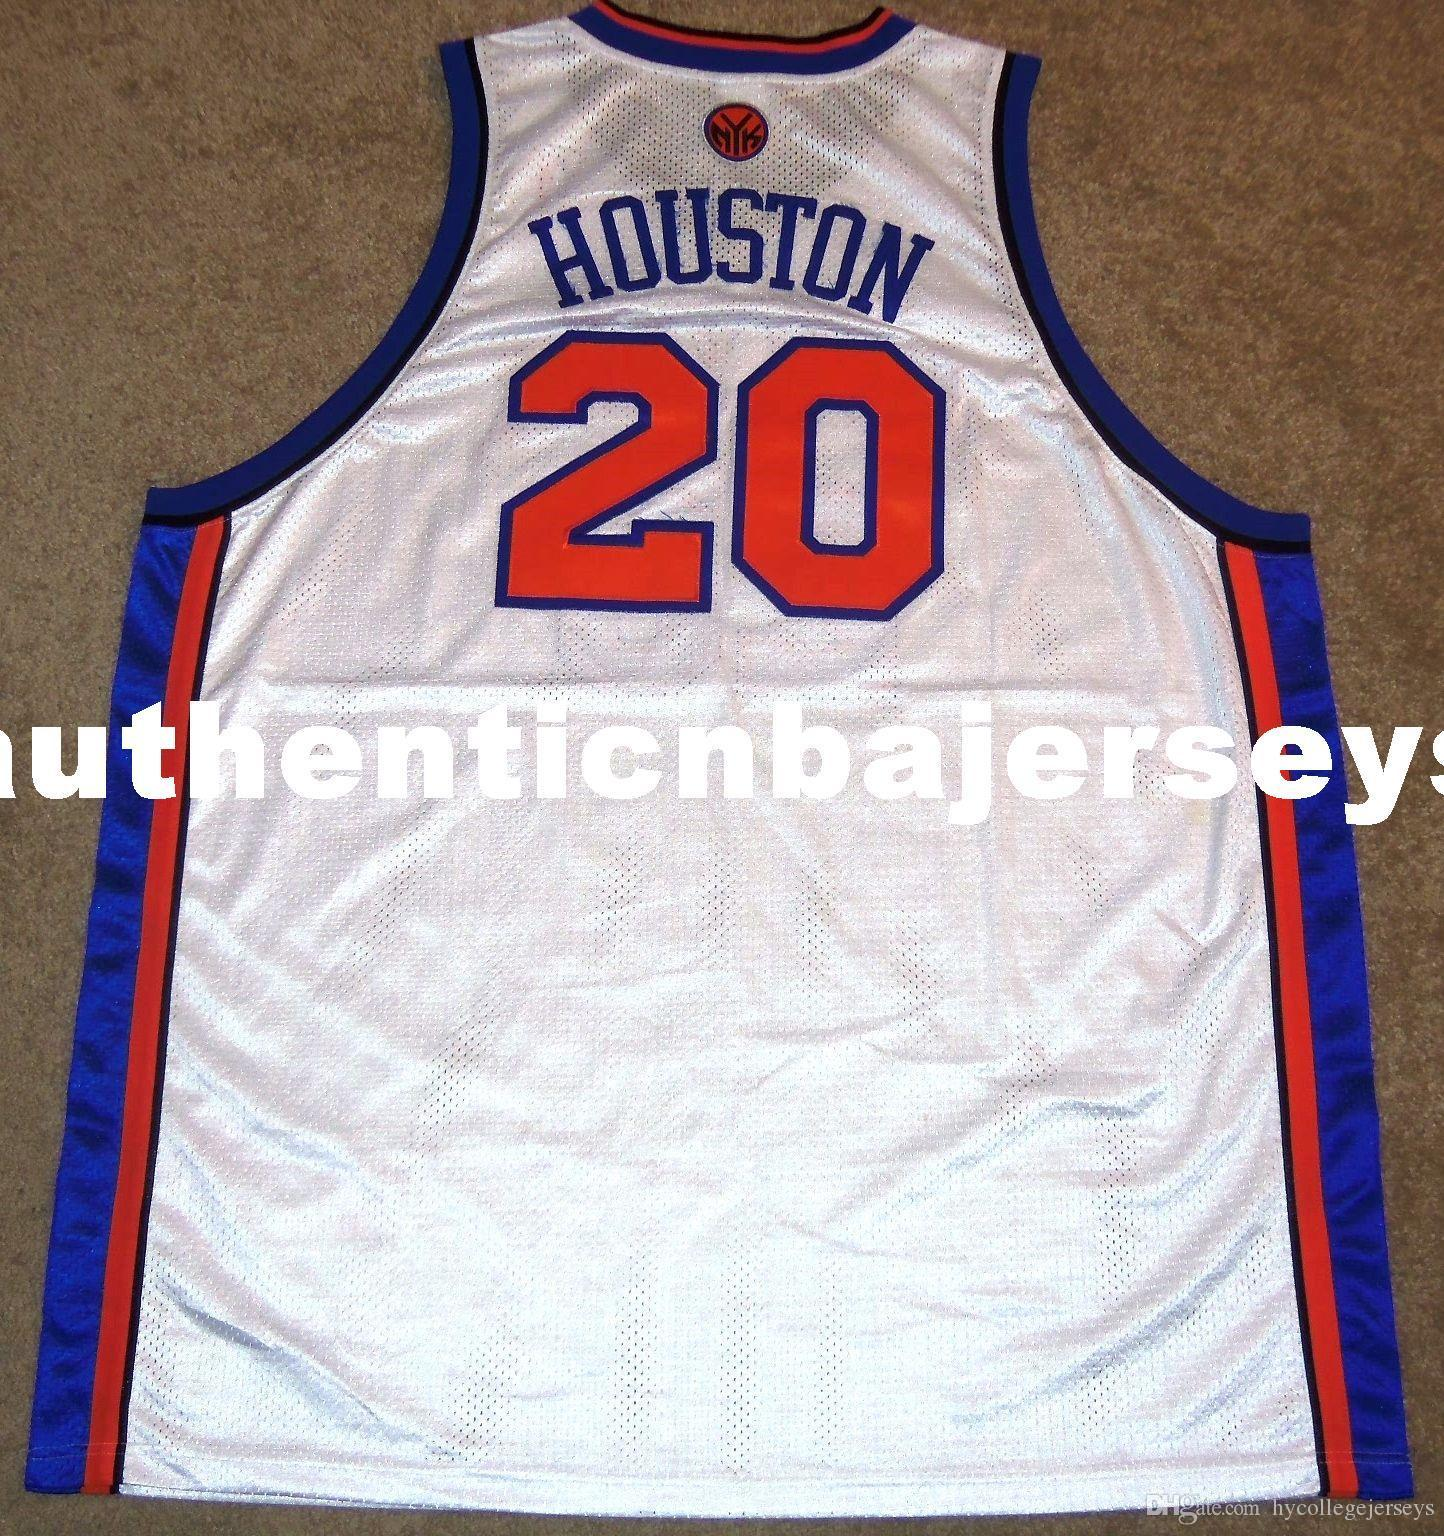 New Top ALLAN houstons #20 high quality Rbk HOME JERSEY SEWN! Mens Vest Size XS-6XL Stitched basketball Jerseys Ncaa